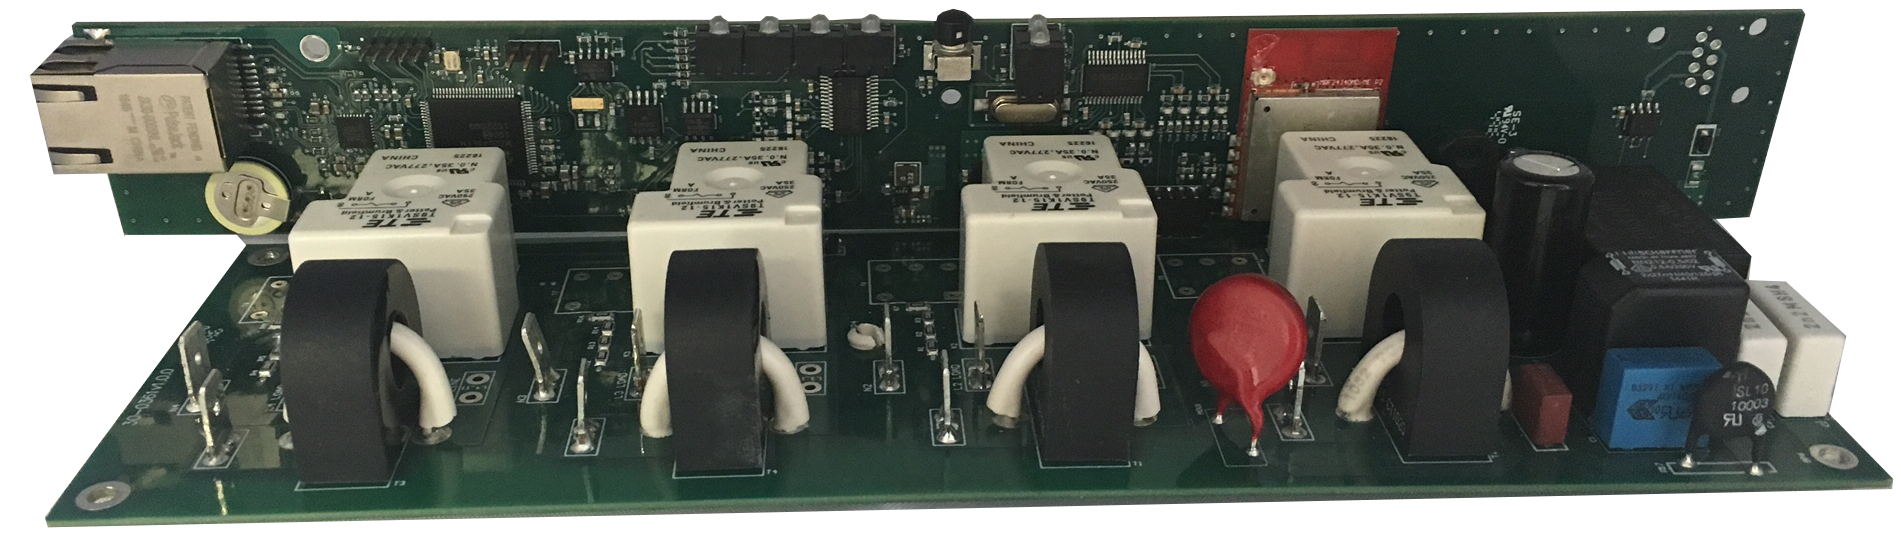 logic and power pcb